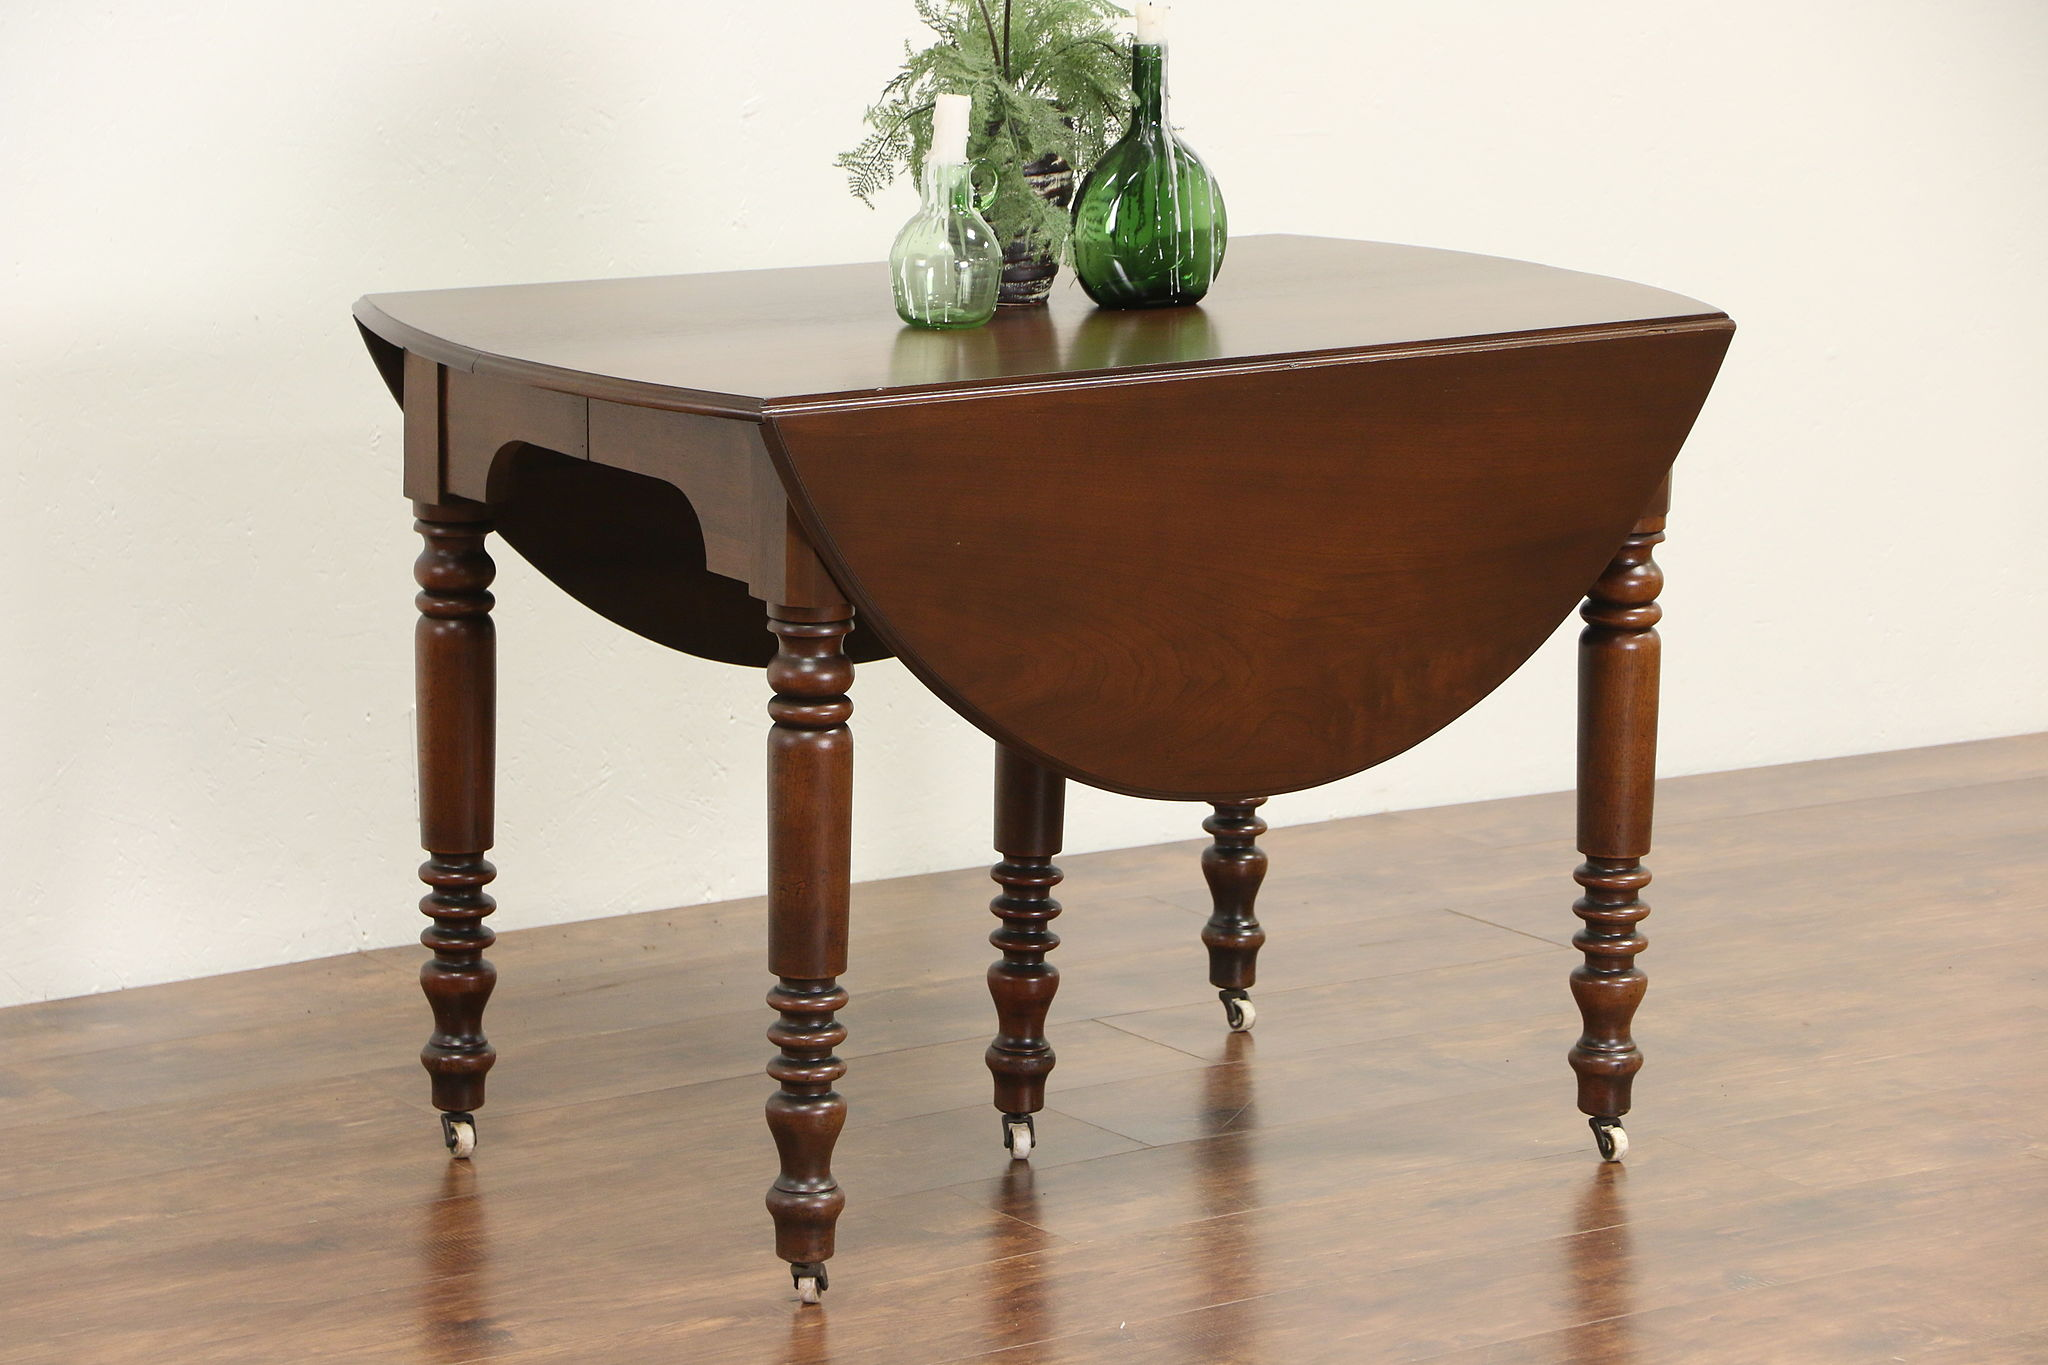 1880 Antique Victorian Walnut Drop Leaf Dining Table 4 Leaves Extends 8 4